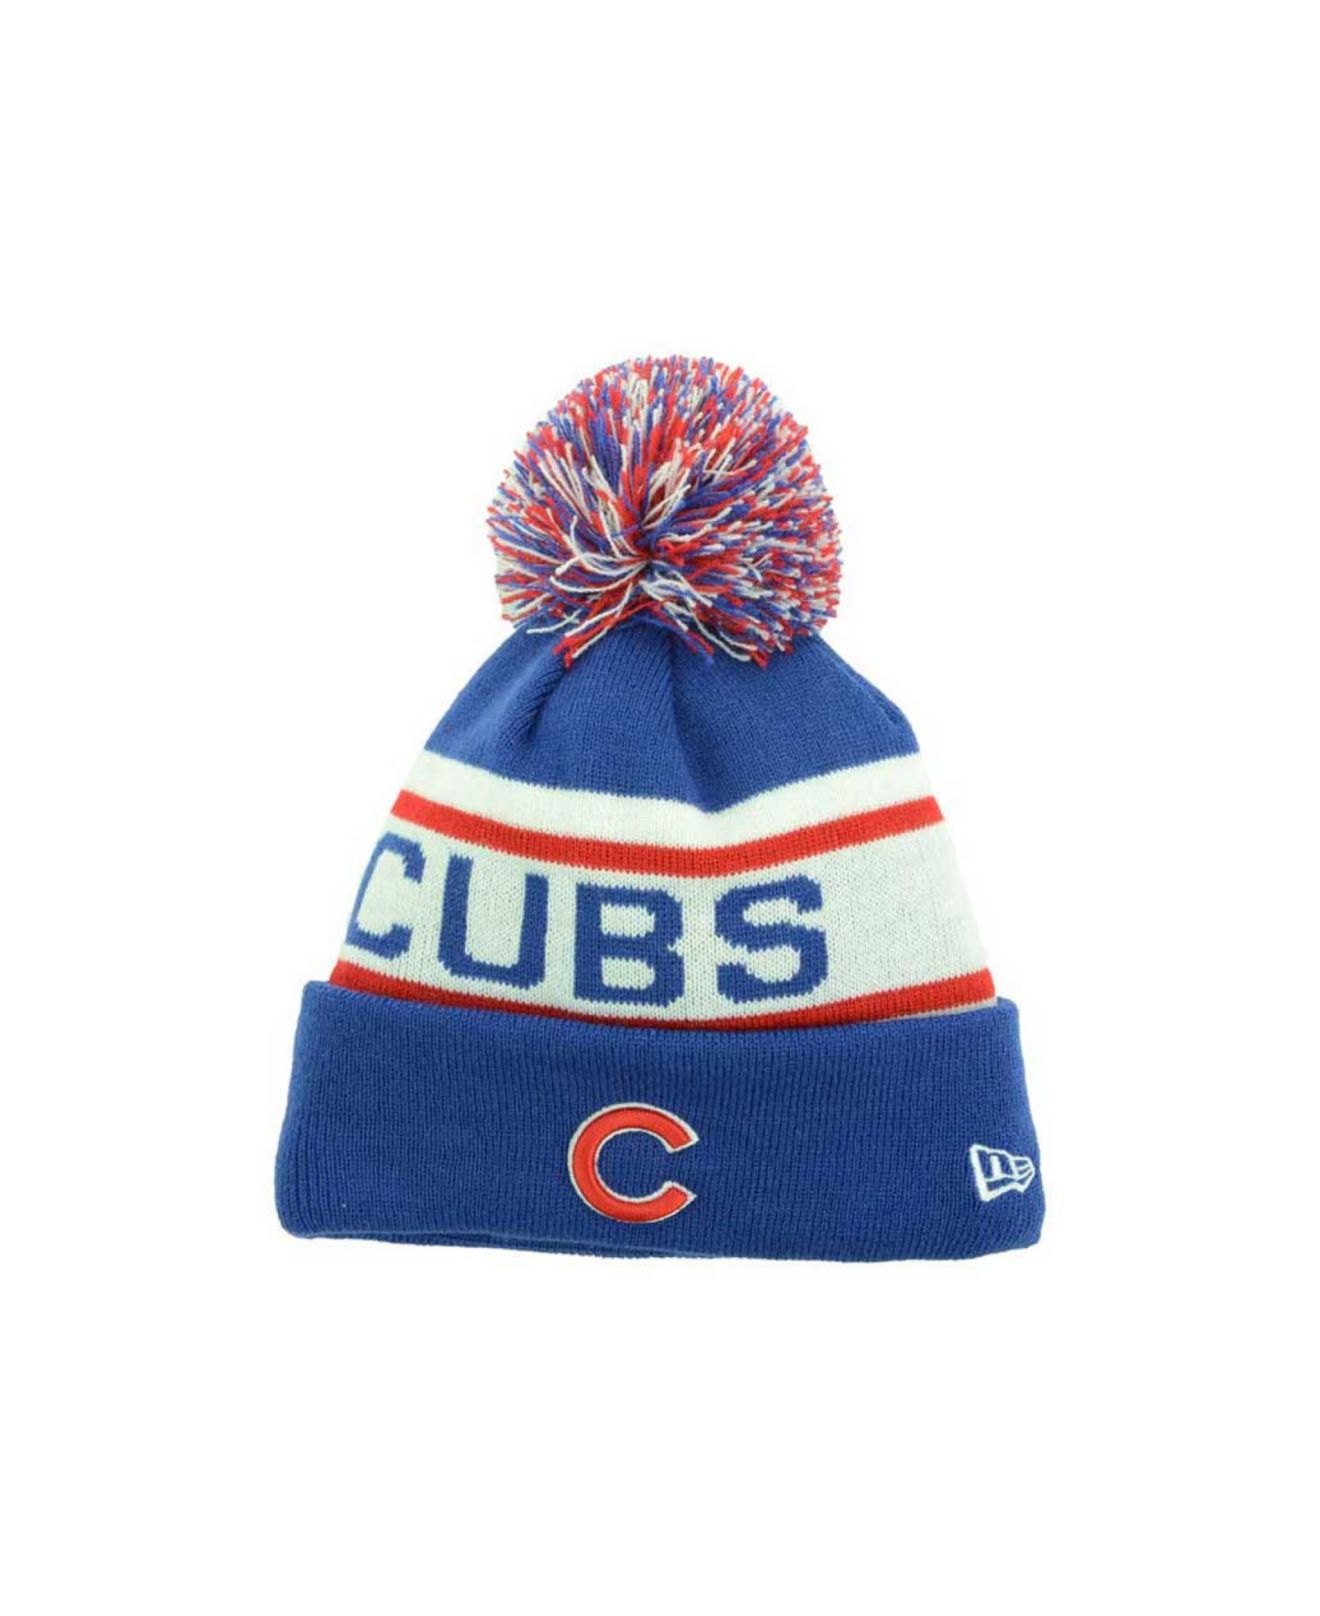 Lyst - KTZ Kids  Chicago Cubs Biggest Fan Knit Hat in Blue for Men 1ebca0a38cc